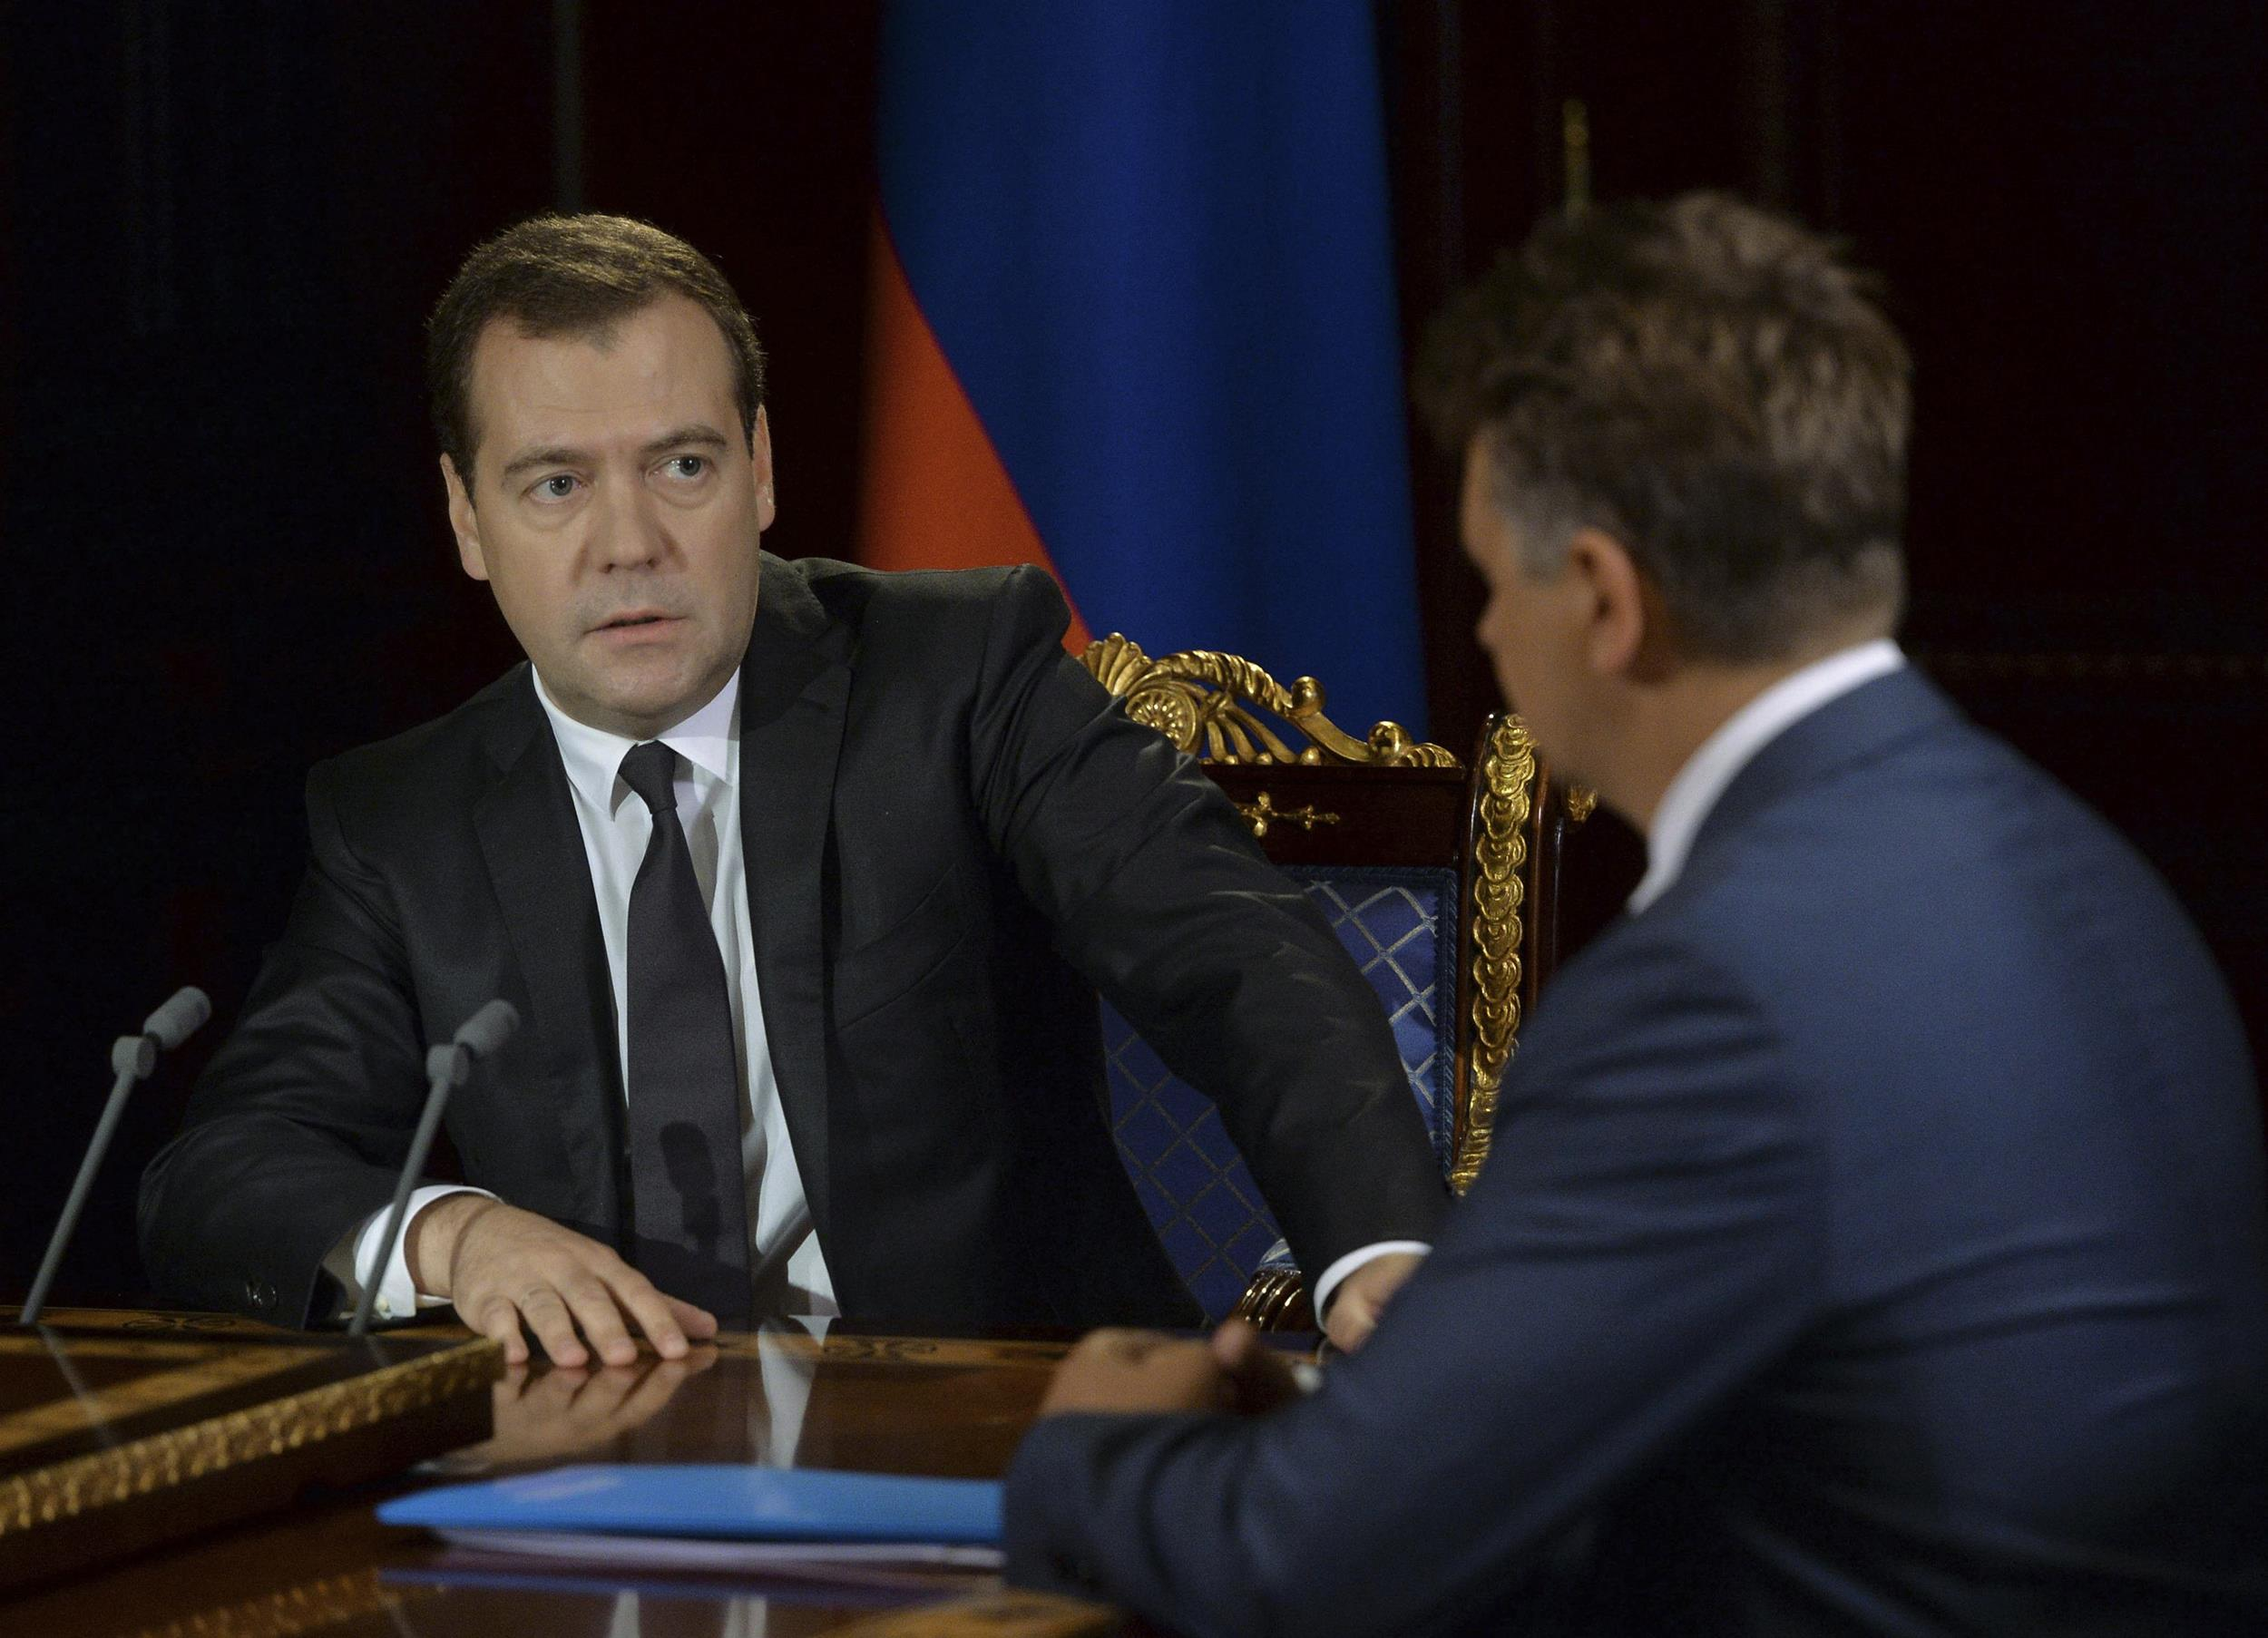 Image: Russia's PM Medvedev meets with Transport Minister Sokolov at the Gorki state residence